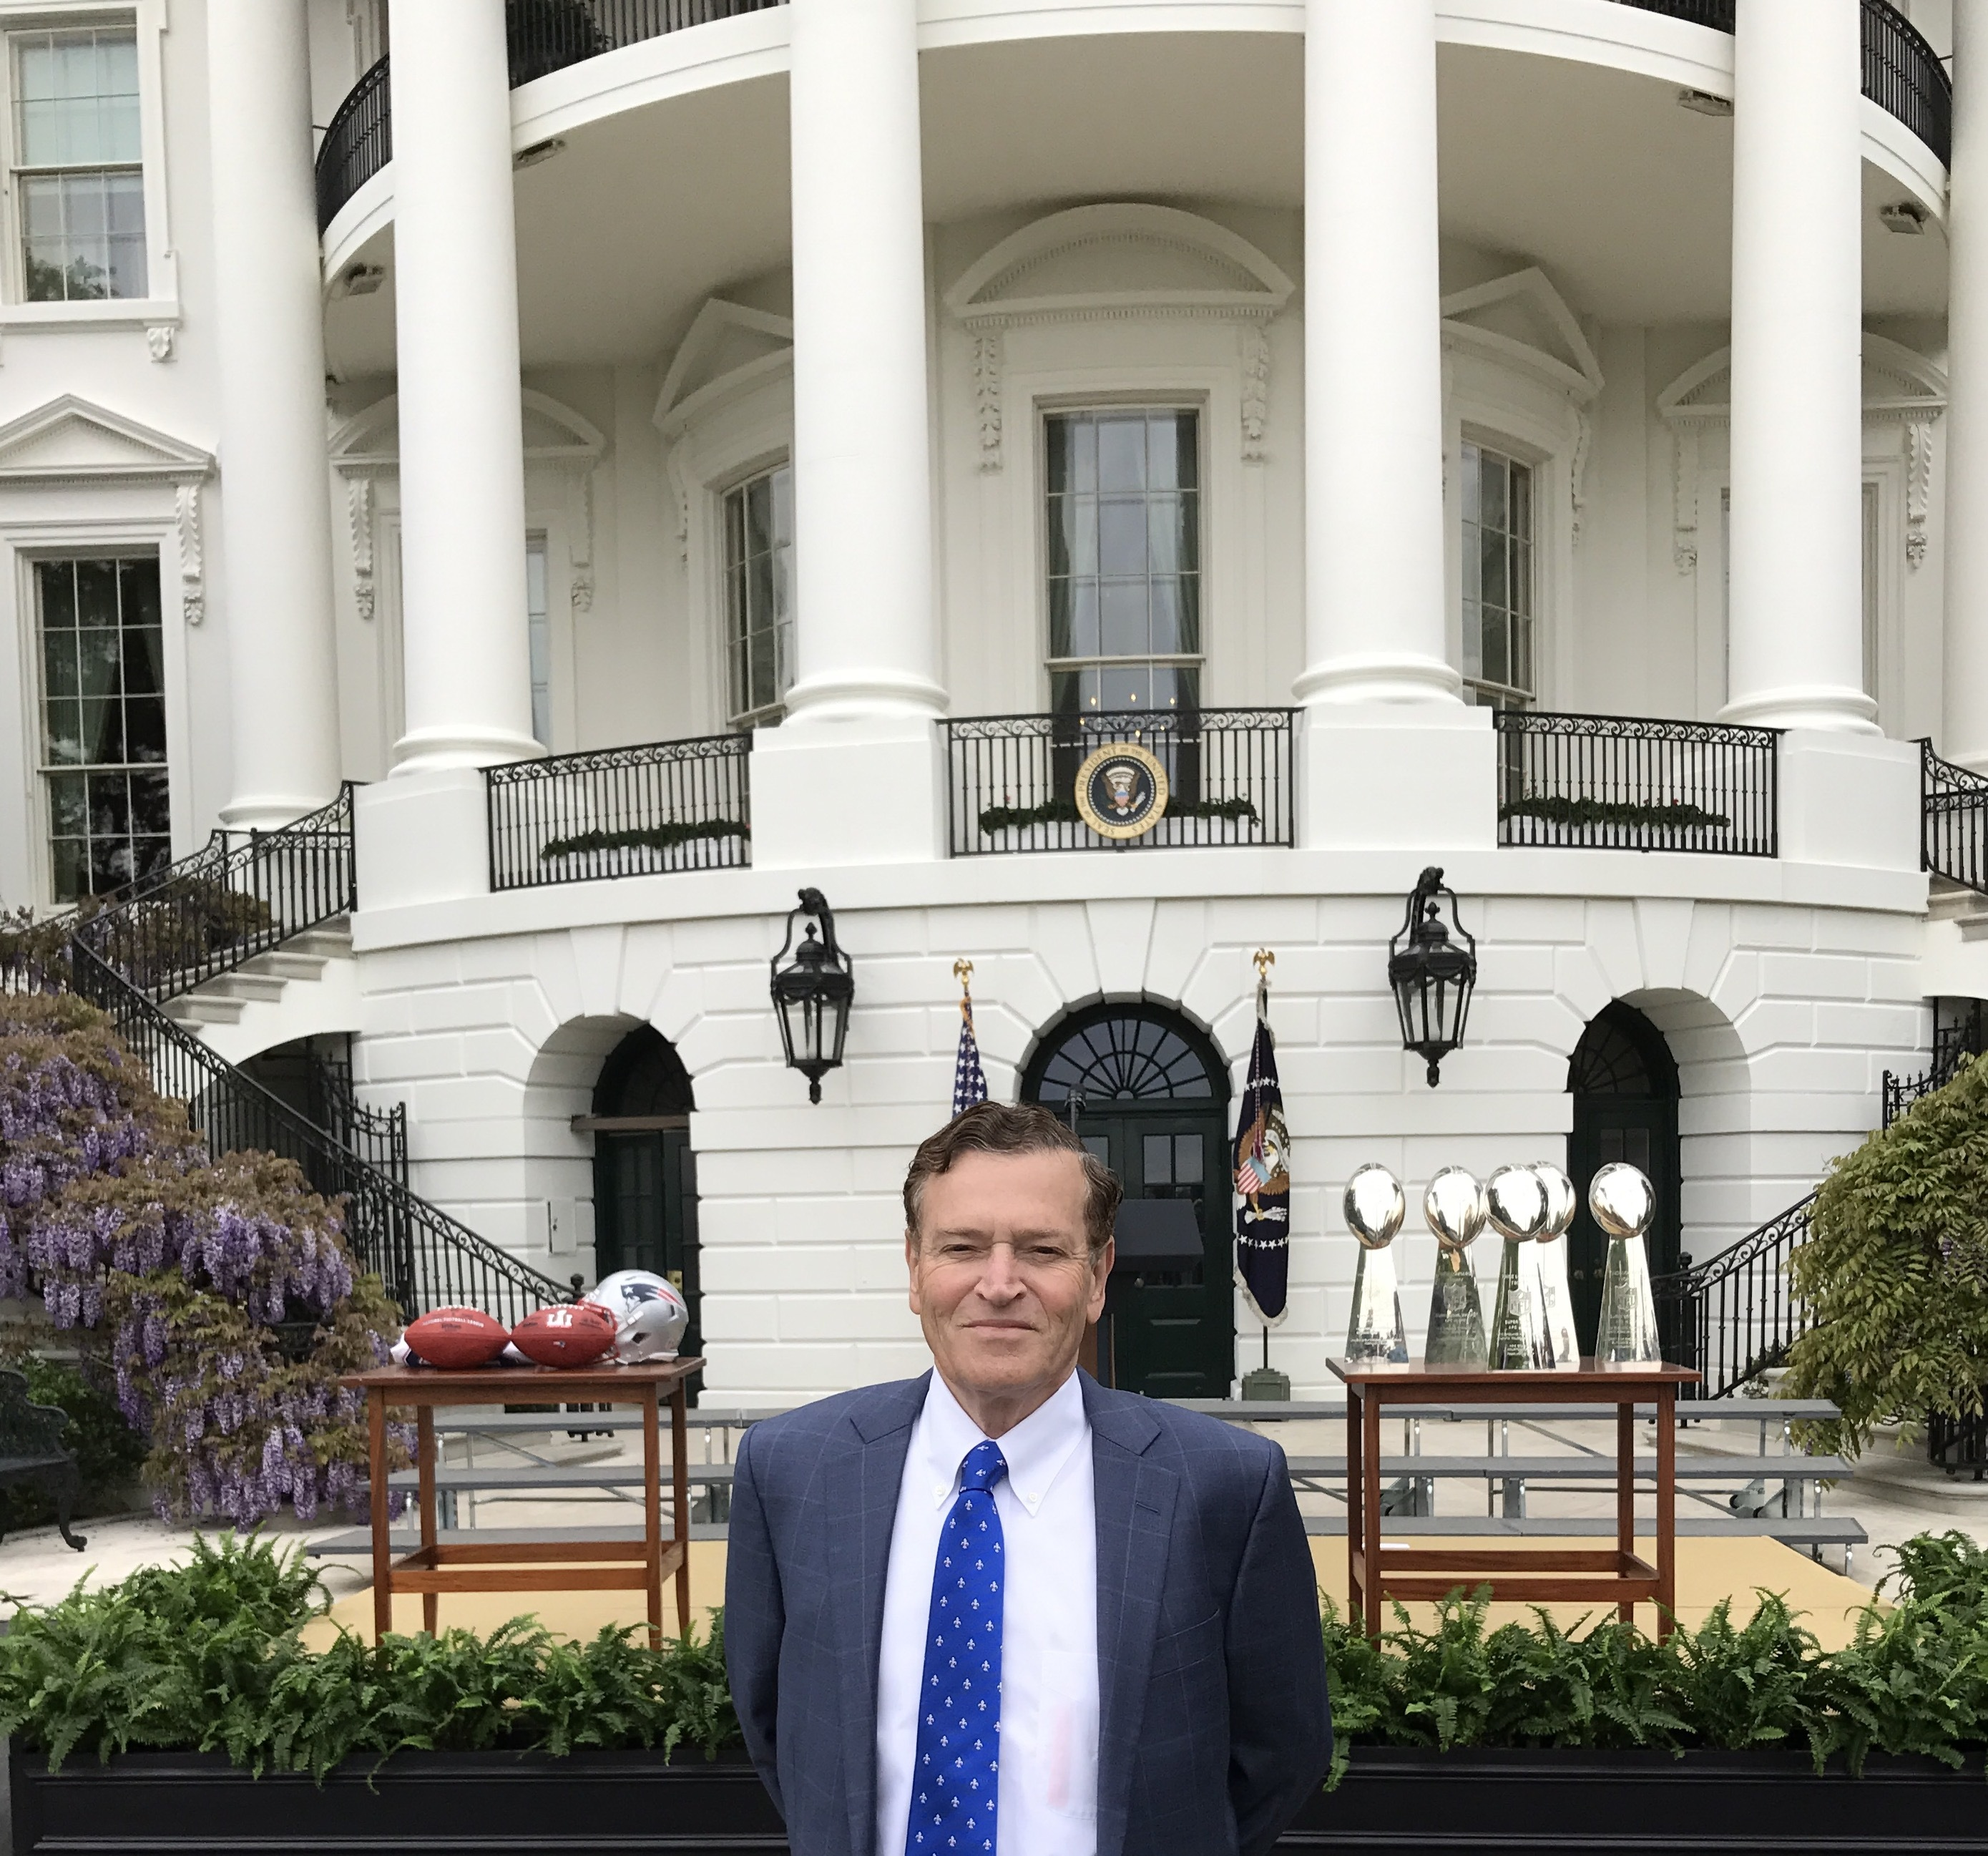 Abode Properties and Pillar Income Asset Management CEO and President, Daniel J. Moos attends Patriots ceremony at the White House on Wednesday, April 19th 2017. (Photo: Business Wire)